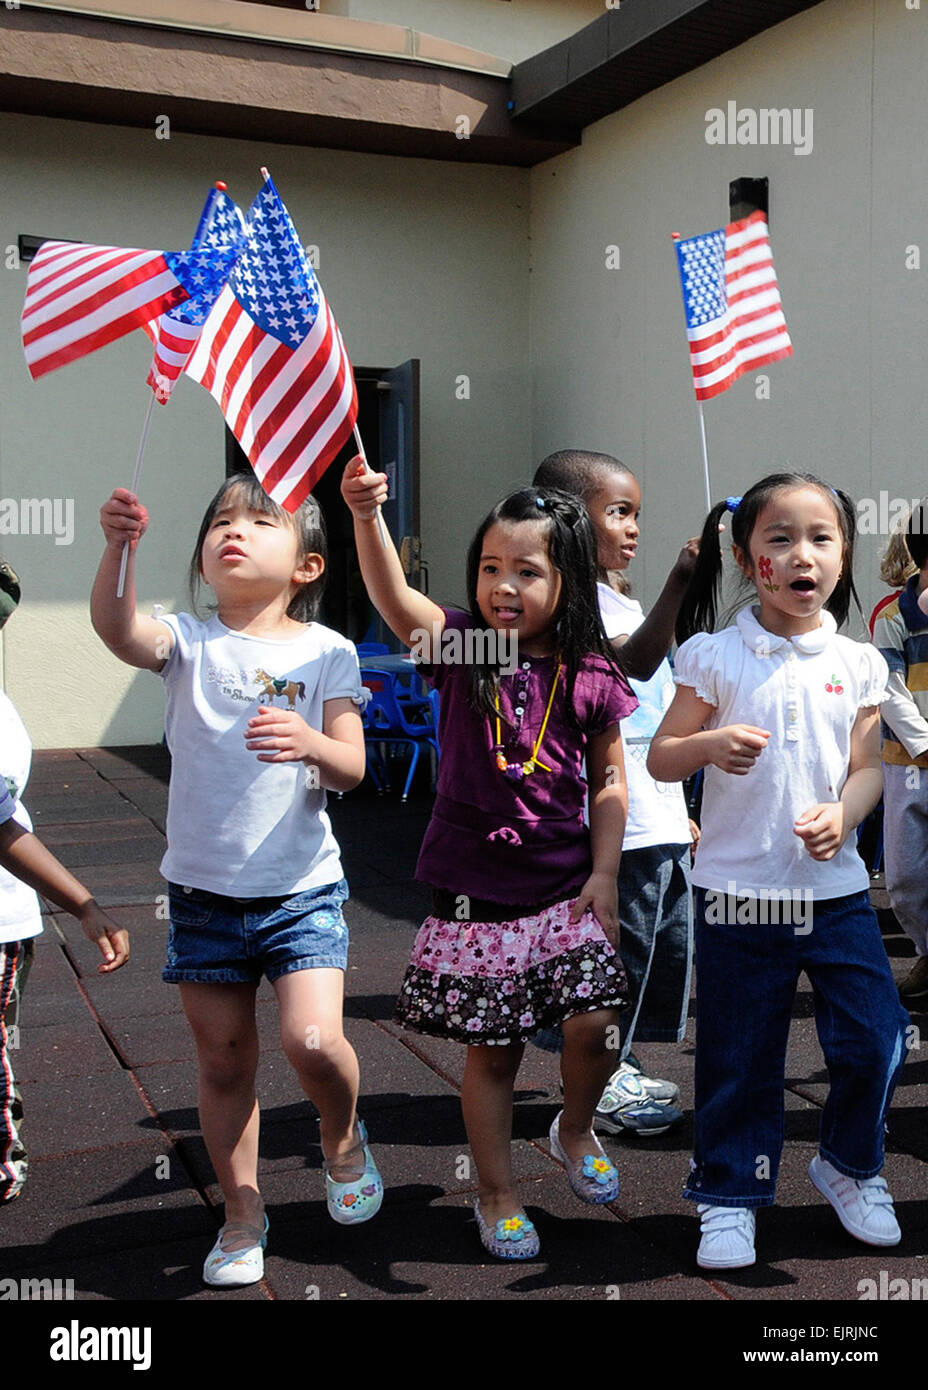 United States Army Garrison Daegu, South Korea Child Development Center students march and wave American flags during Stock Photo